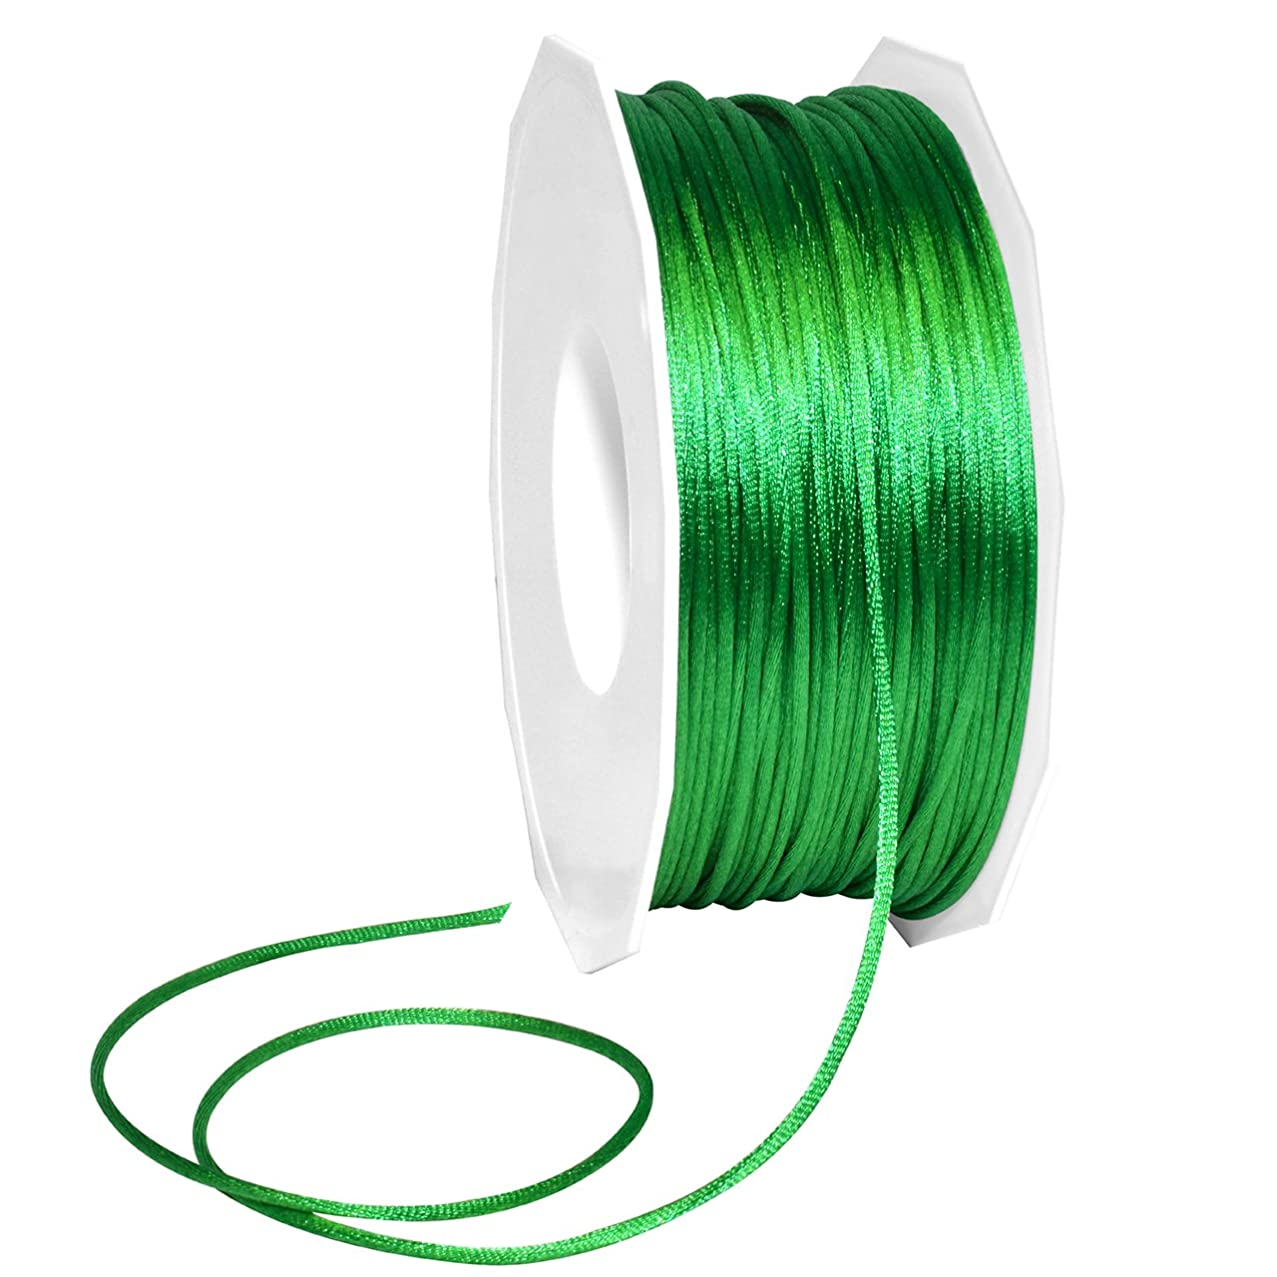 Morex Ribbon Nylon, 1/8 inch by 144 Yards, Green, Item 1305/144-607 Satin Cord